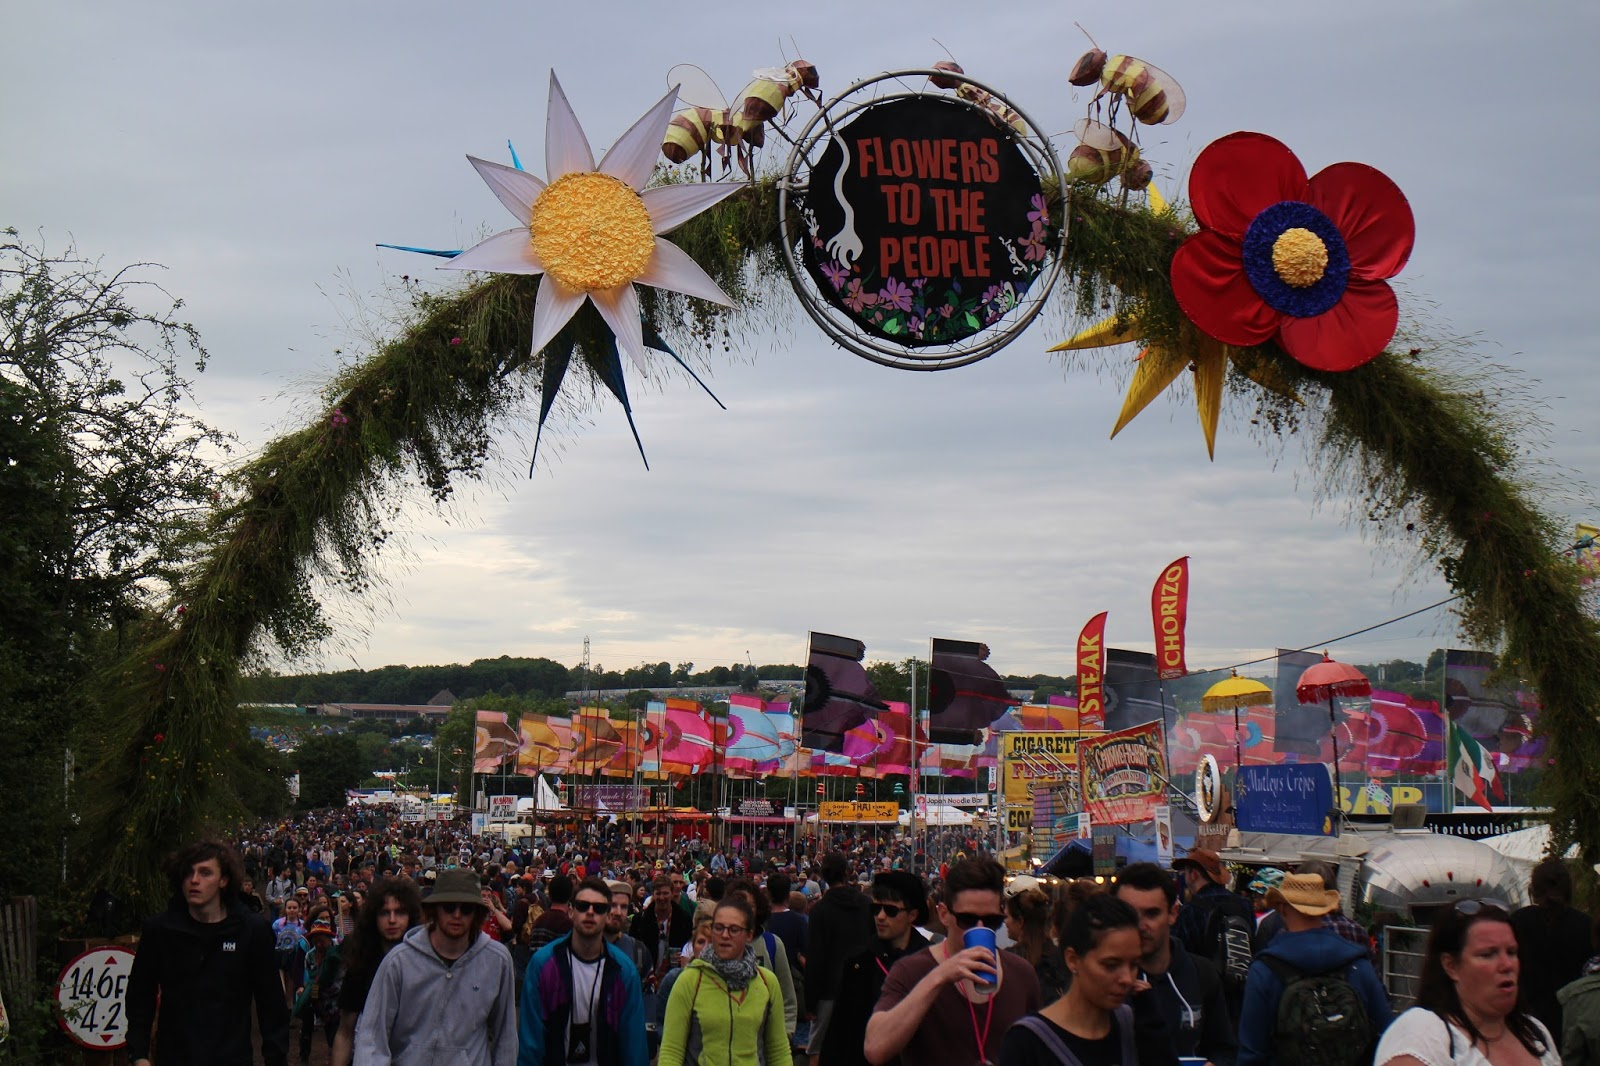 Glastonbury Festival 2016 - Flowers to the People